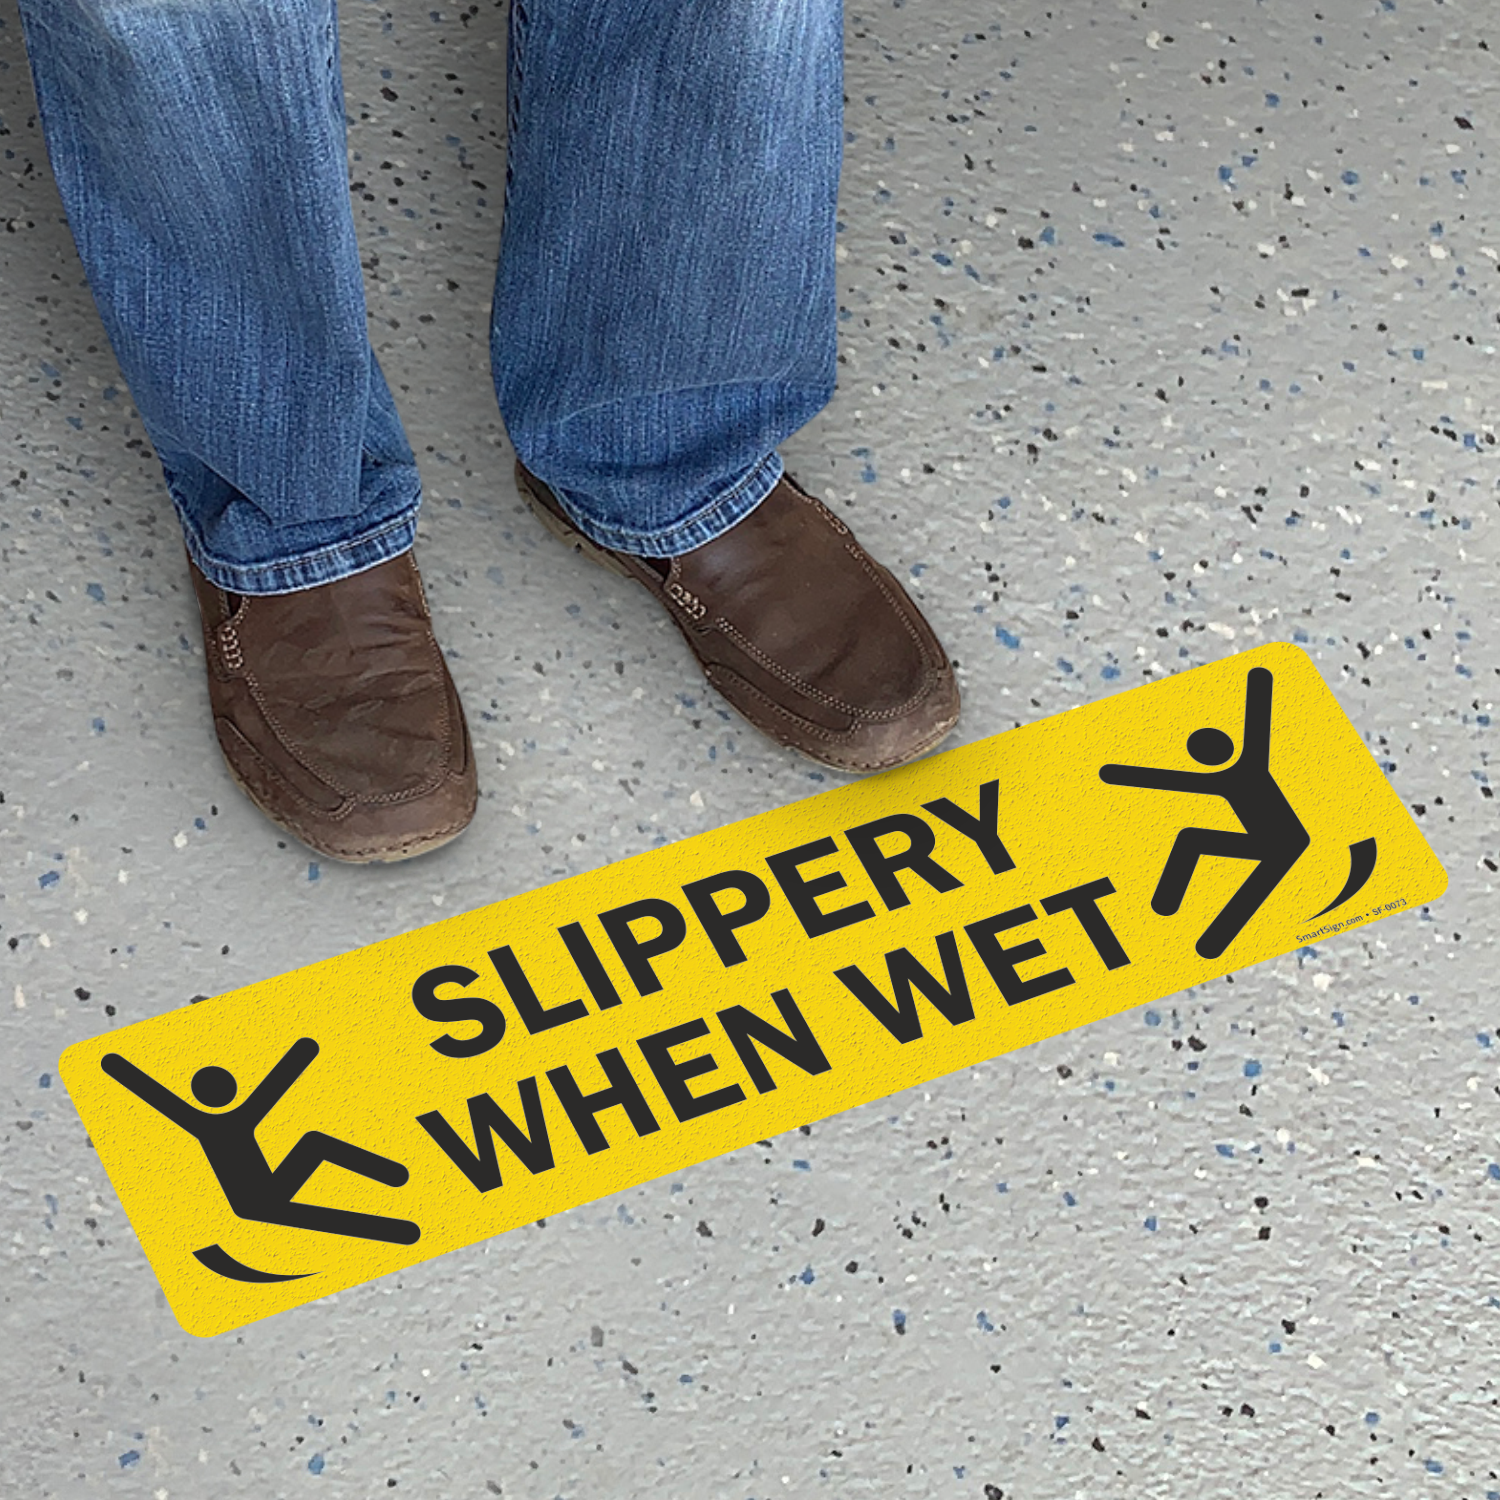 Slippery When Wet Signs | Warning Safety Signs from Key Signs